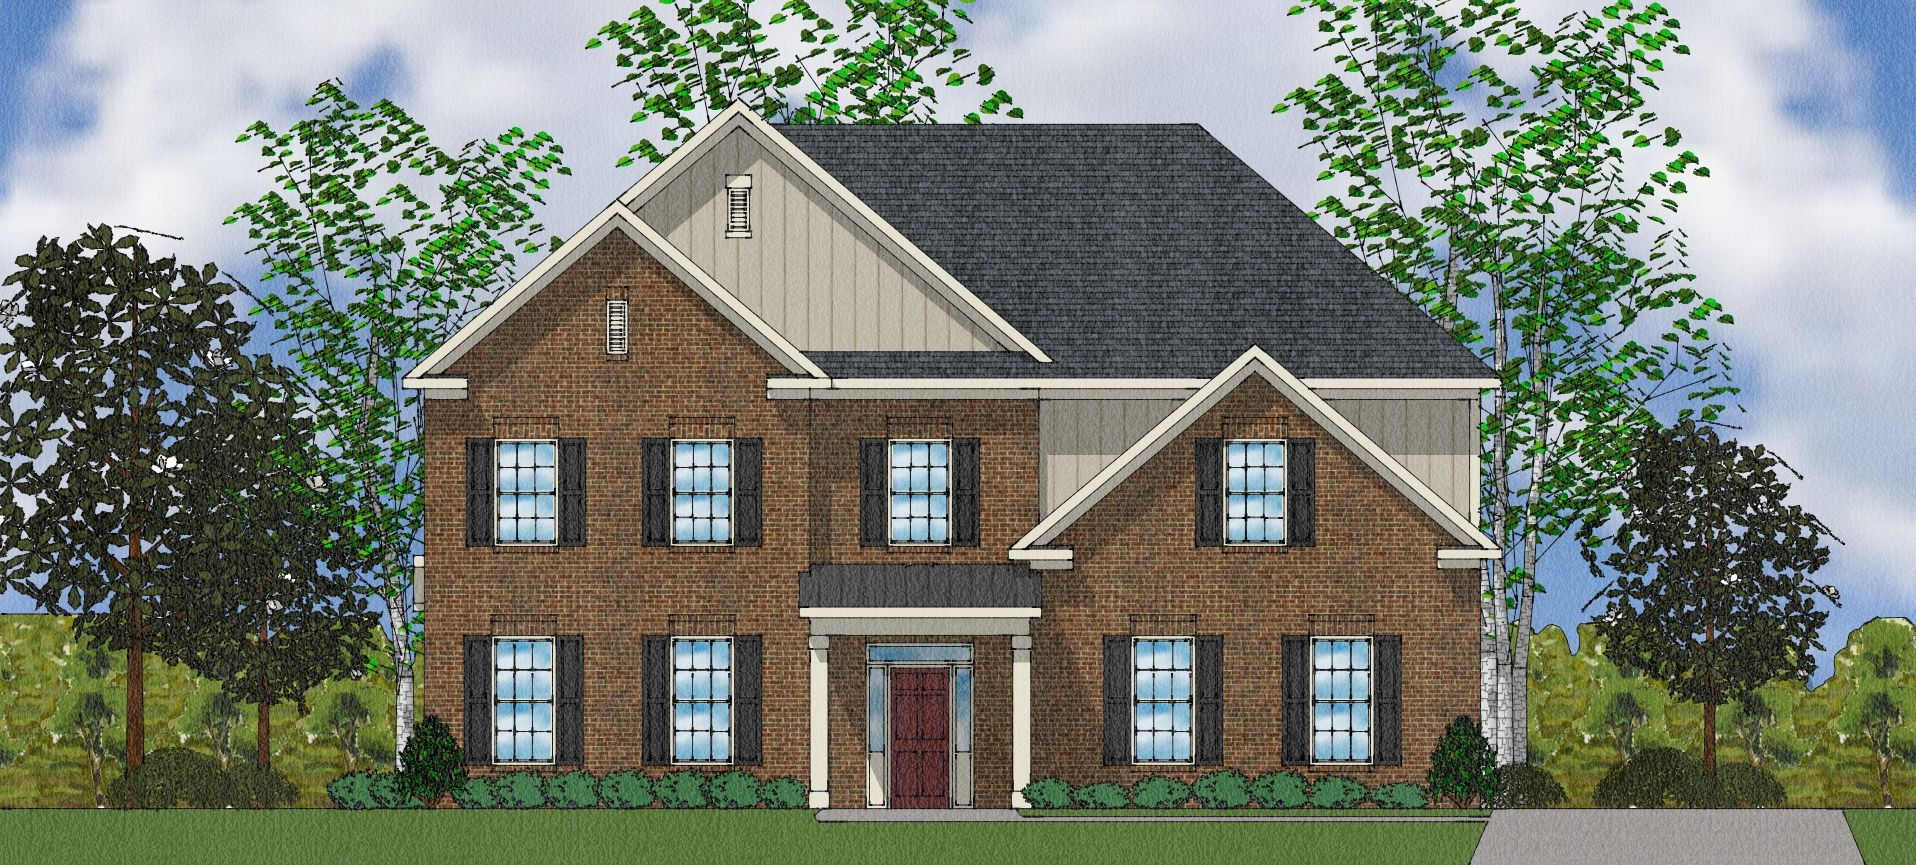 Exterior featured in The Duvall II By Goodall Homes in Huntsville, AL